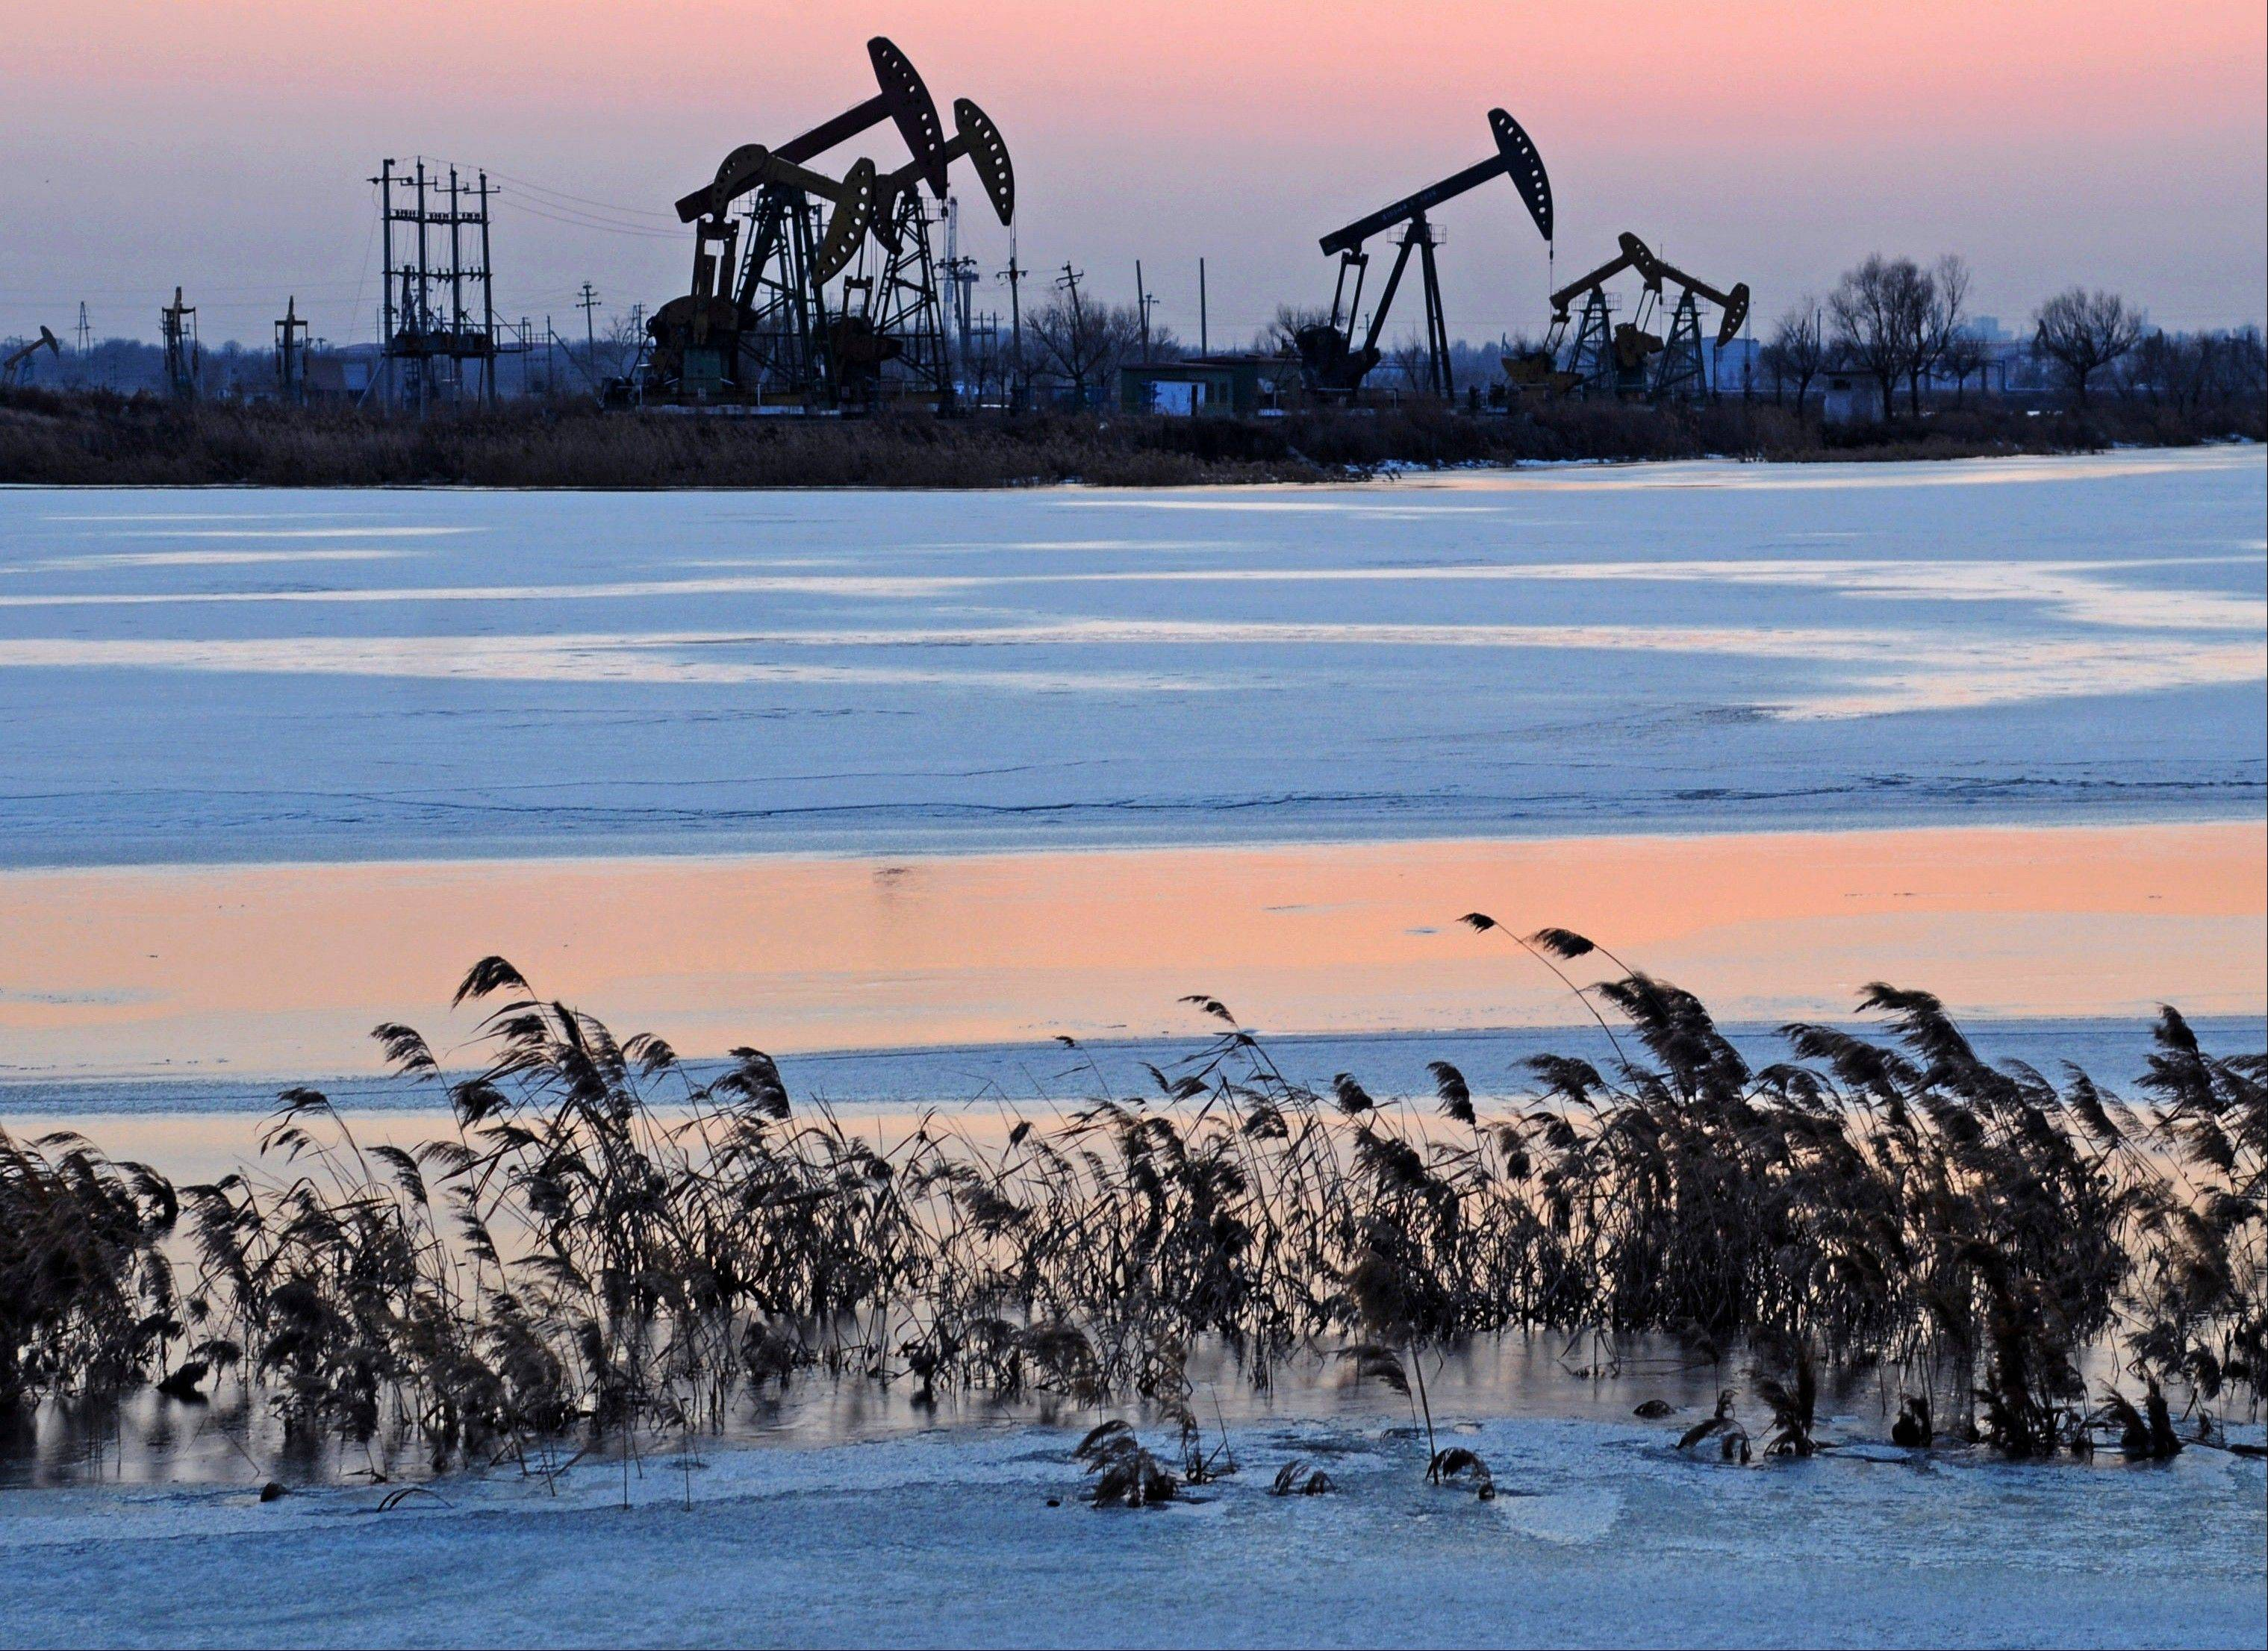 Oil rigs belonging to PetroChina are seen near the banks of a snow covered lake in Daqing in northeastern China�s Heilongjiang province earlier this year.